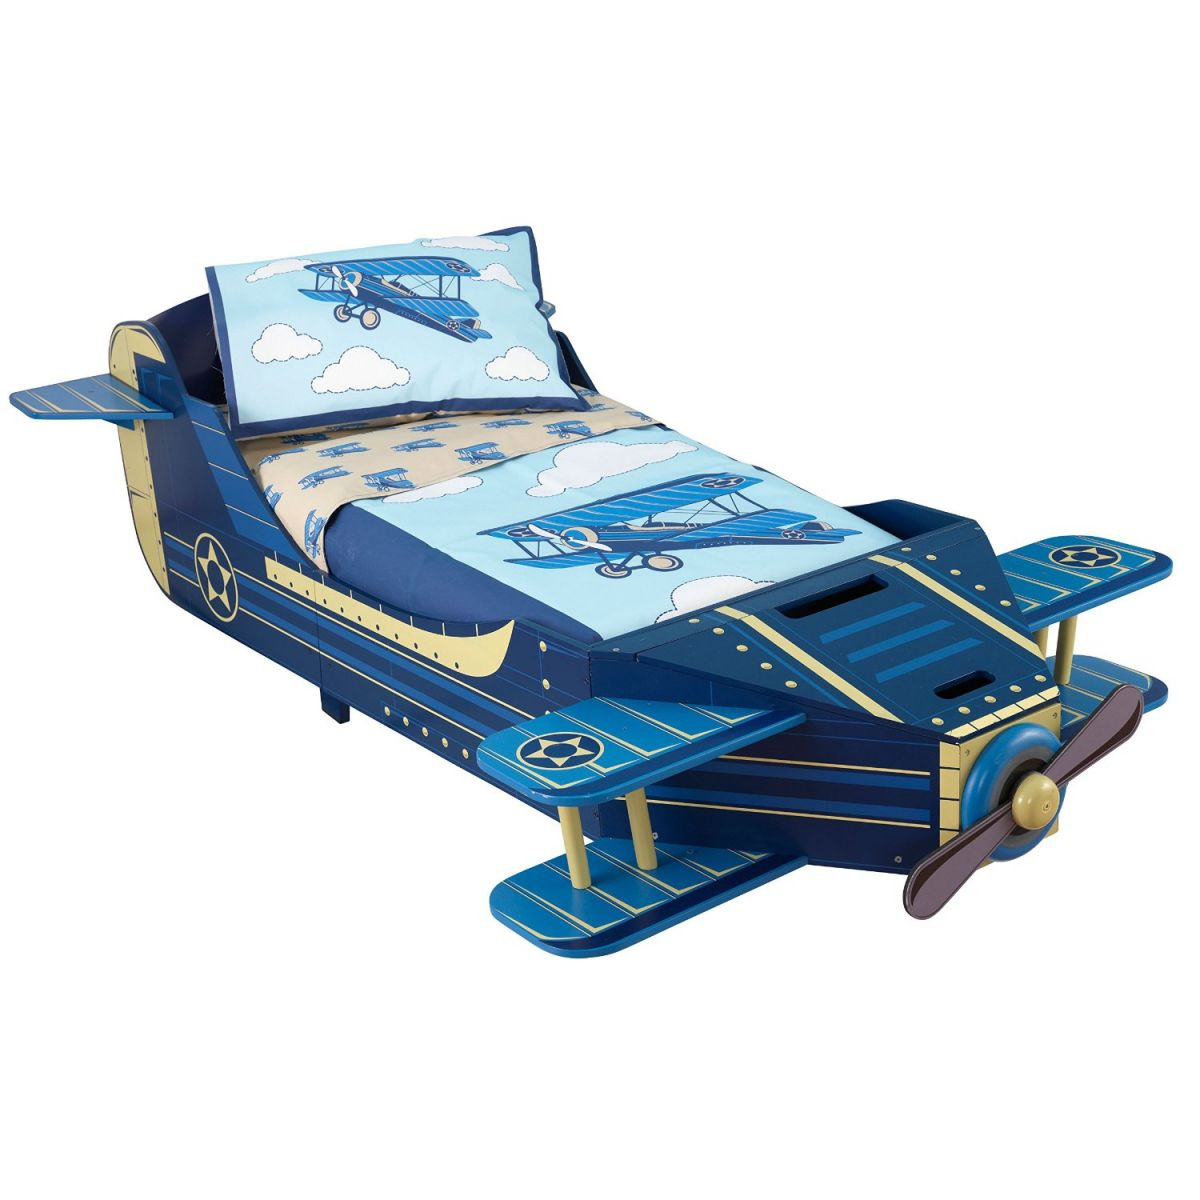 Kidkraft AirplaneToddler Bed Airplane Bed Toddler Beds